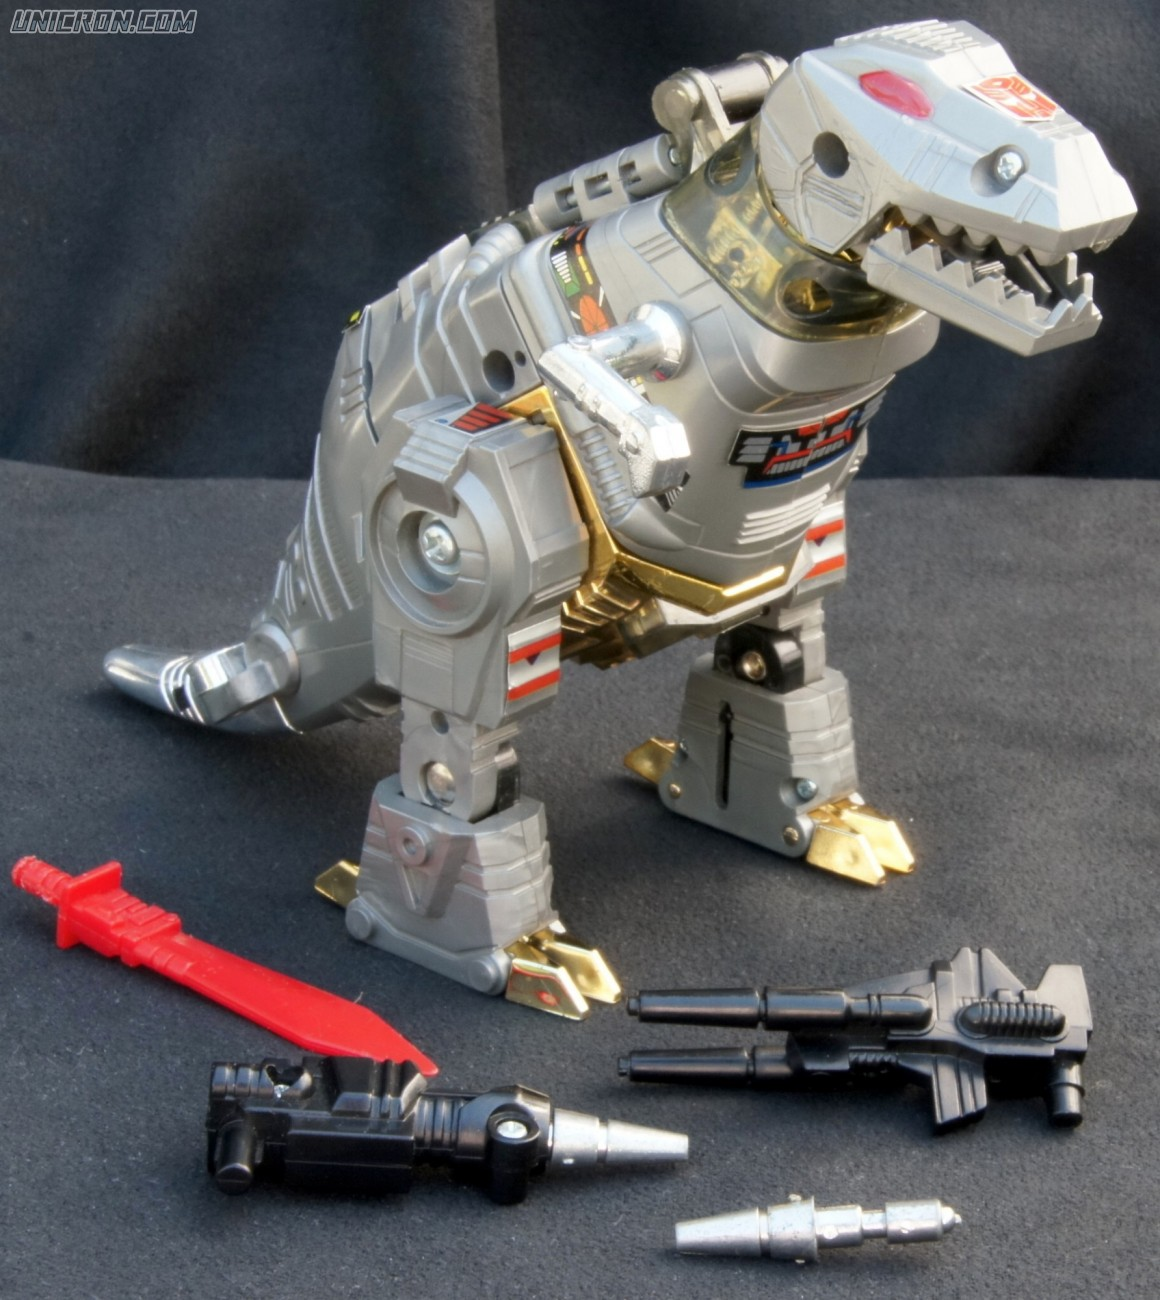 Transformers Generation 1 Grimlock toy